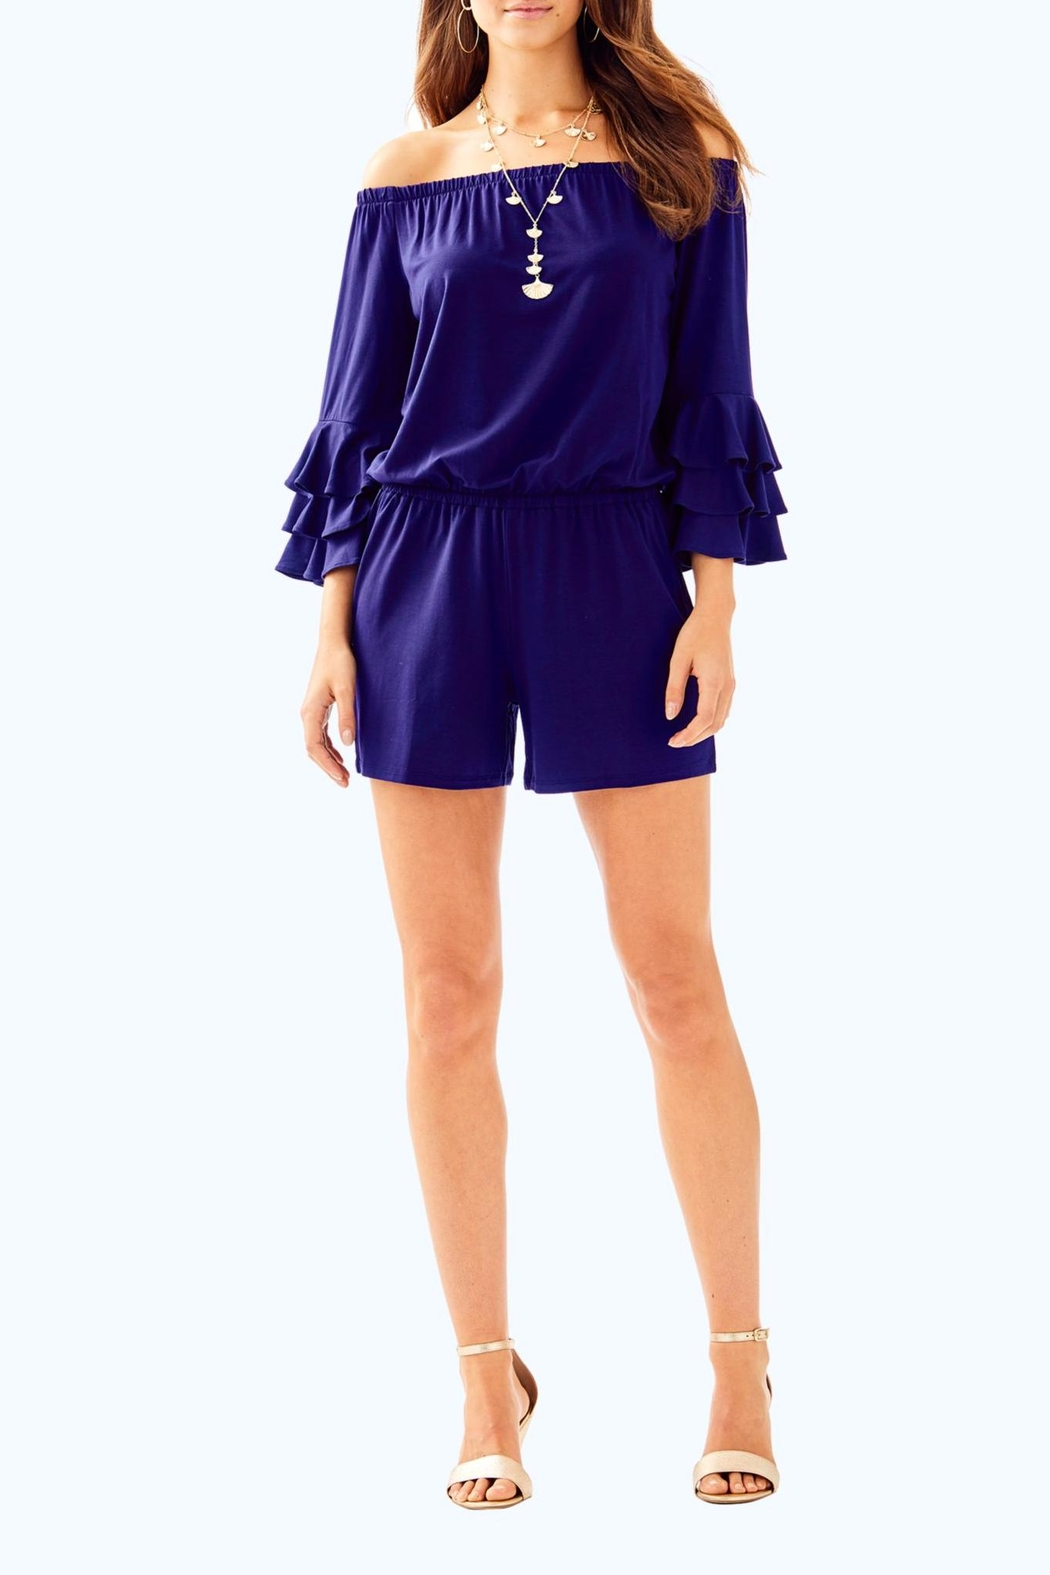 ce47c5674f0a7c Lilly Pulitzer Calla Romper from Sandestin Golf and Beach Resort by ...